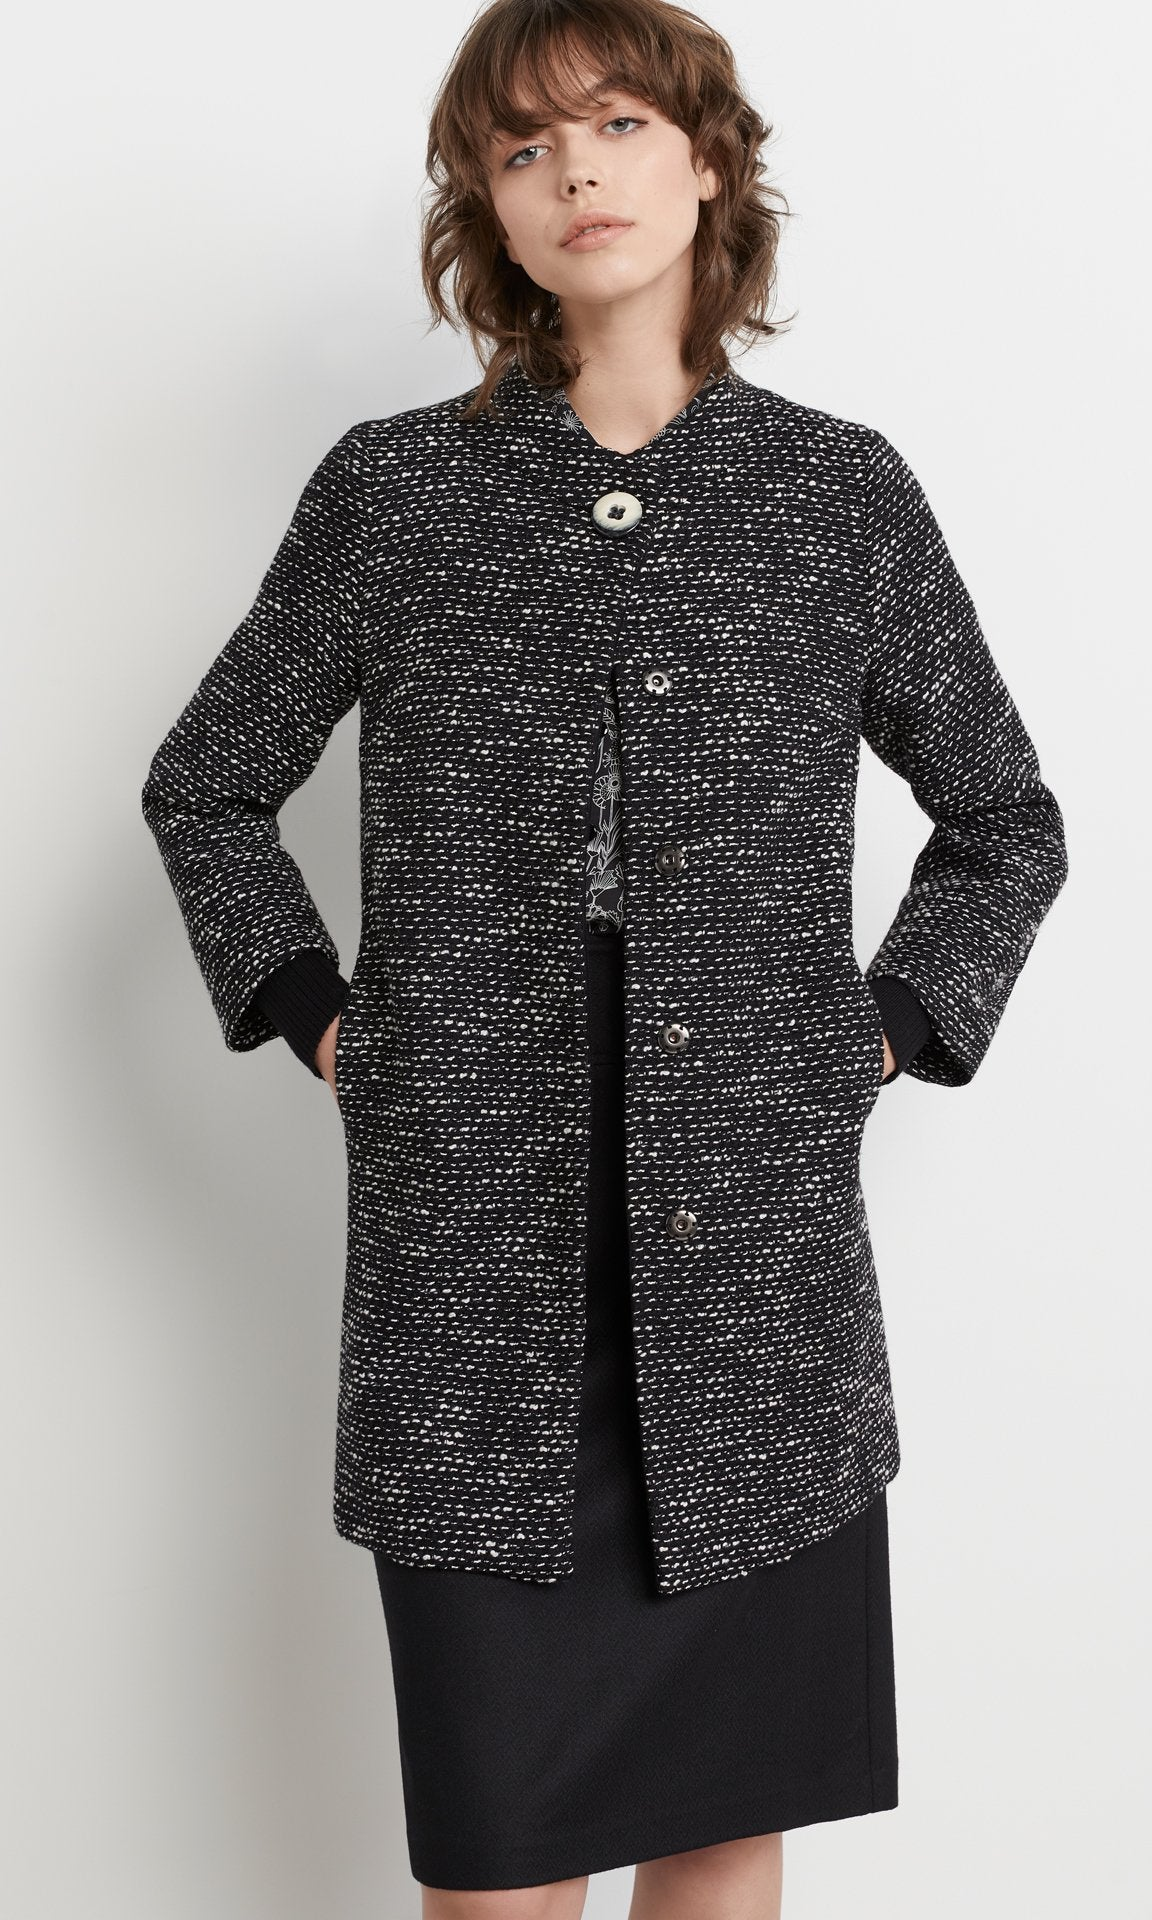 Bogart Coat Blk/White